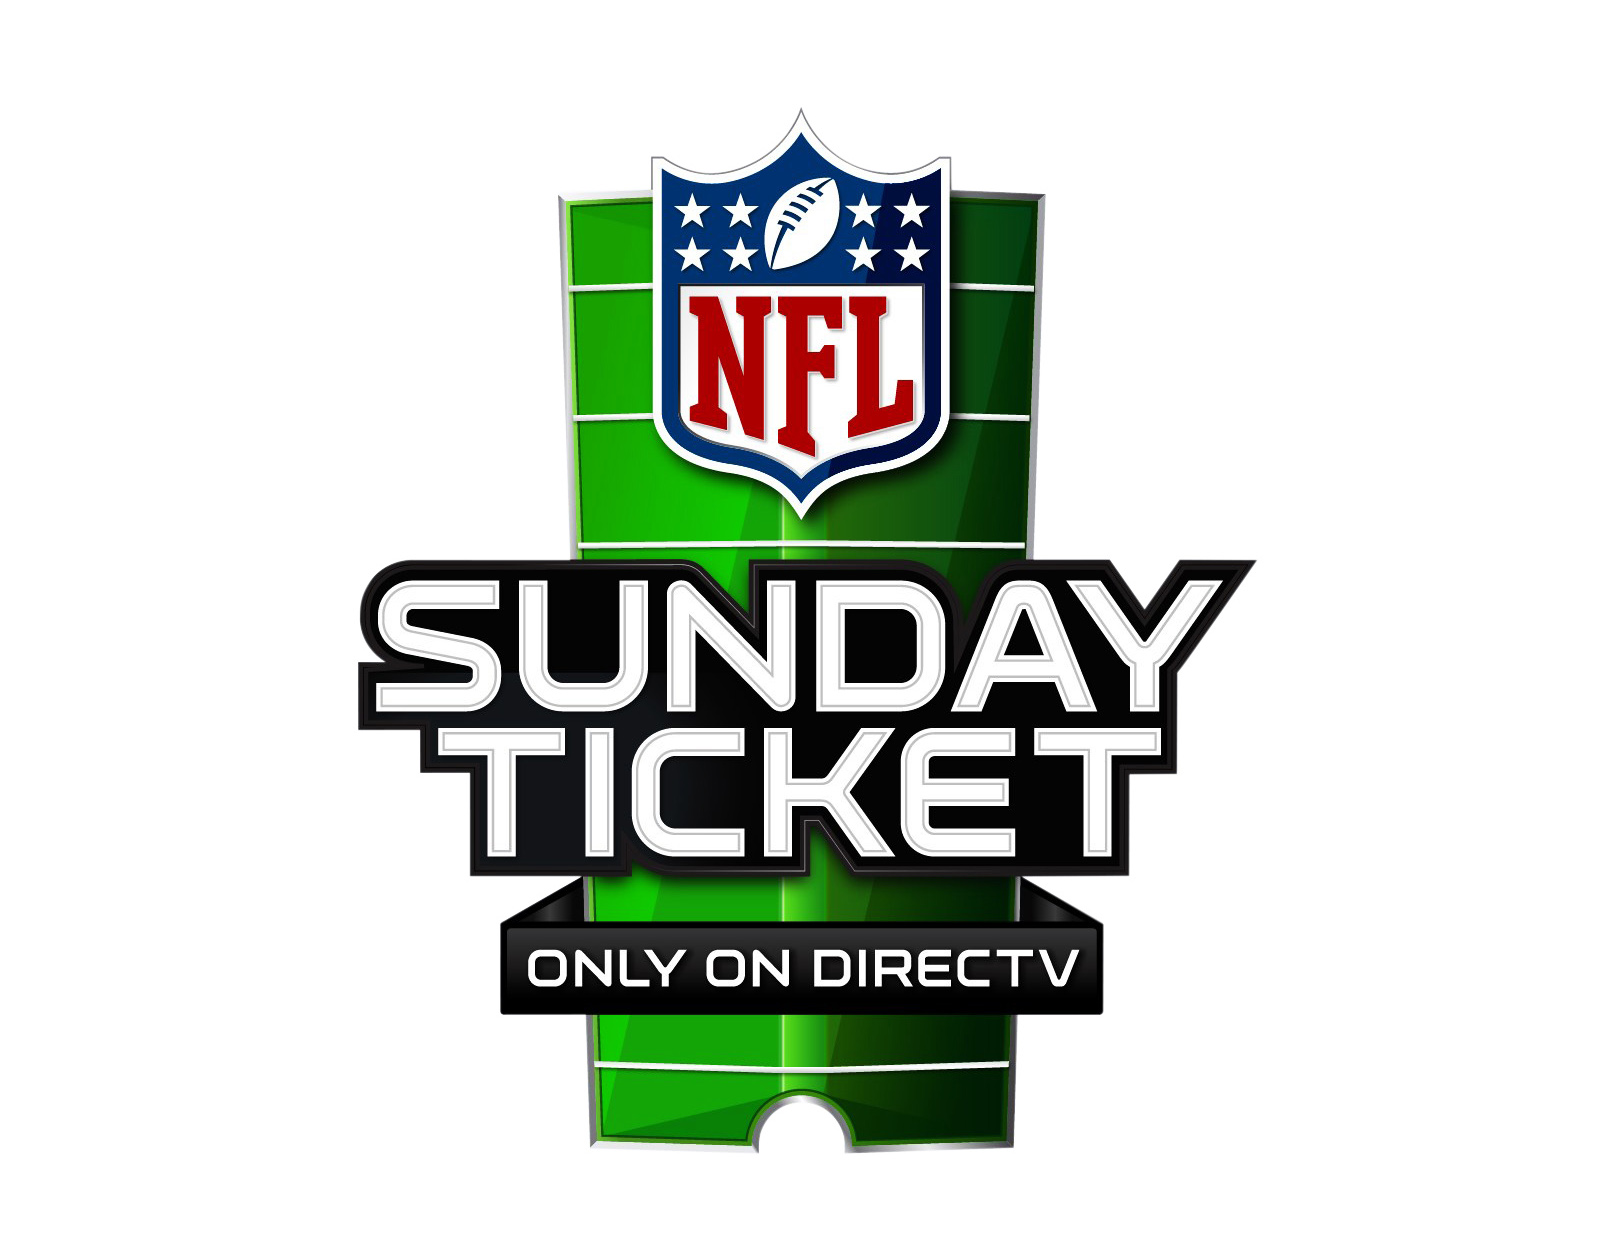 DirectTV NFL Sunday Ticket